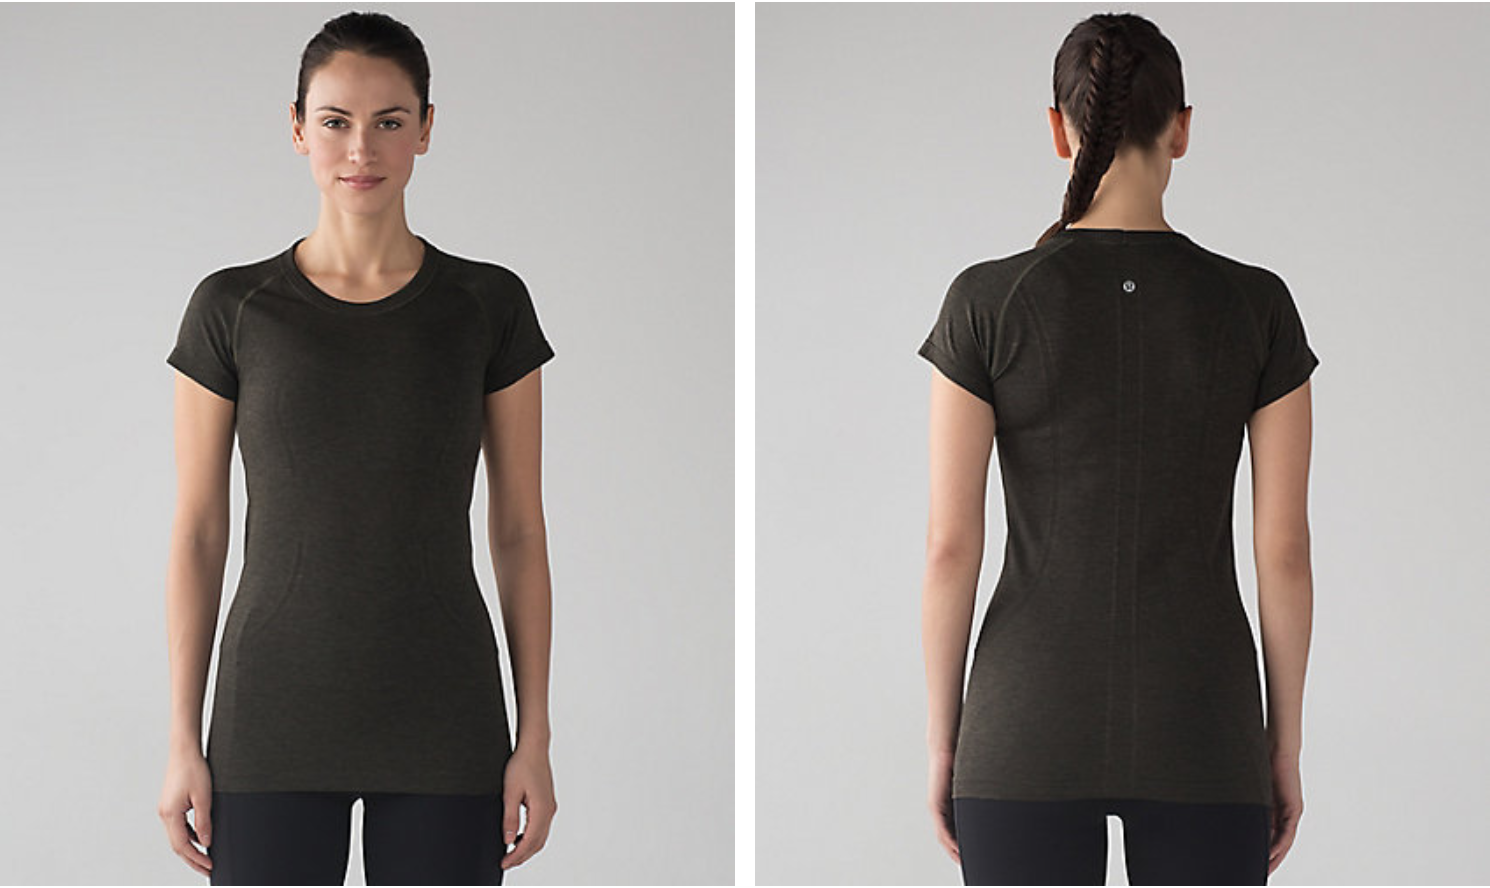 https://api.shopstyle.com/action/apiVisitRetailer?url=https%3A%2F%2Fshop.lululemon.com%2Fp%2Ftops-short-sleeve%2FRun-Swiftly-Tech-Short-Sleeve-Crew%2F_%2Fprod4500151%3Frcnt%3D9%26N%3D1z13ziiZ7vf%26cnt%3D71%26color%3DLW3M19S_028928&site=www.shopstyle.ca&pid=uid6784-25288972-7